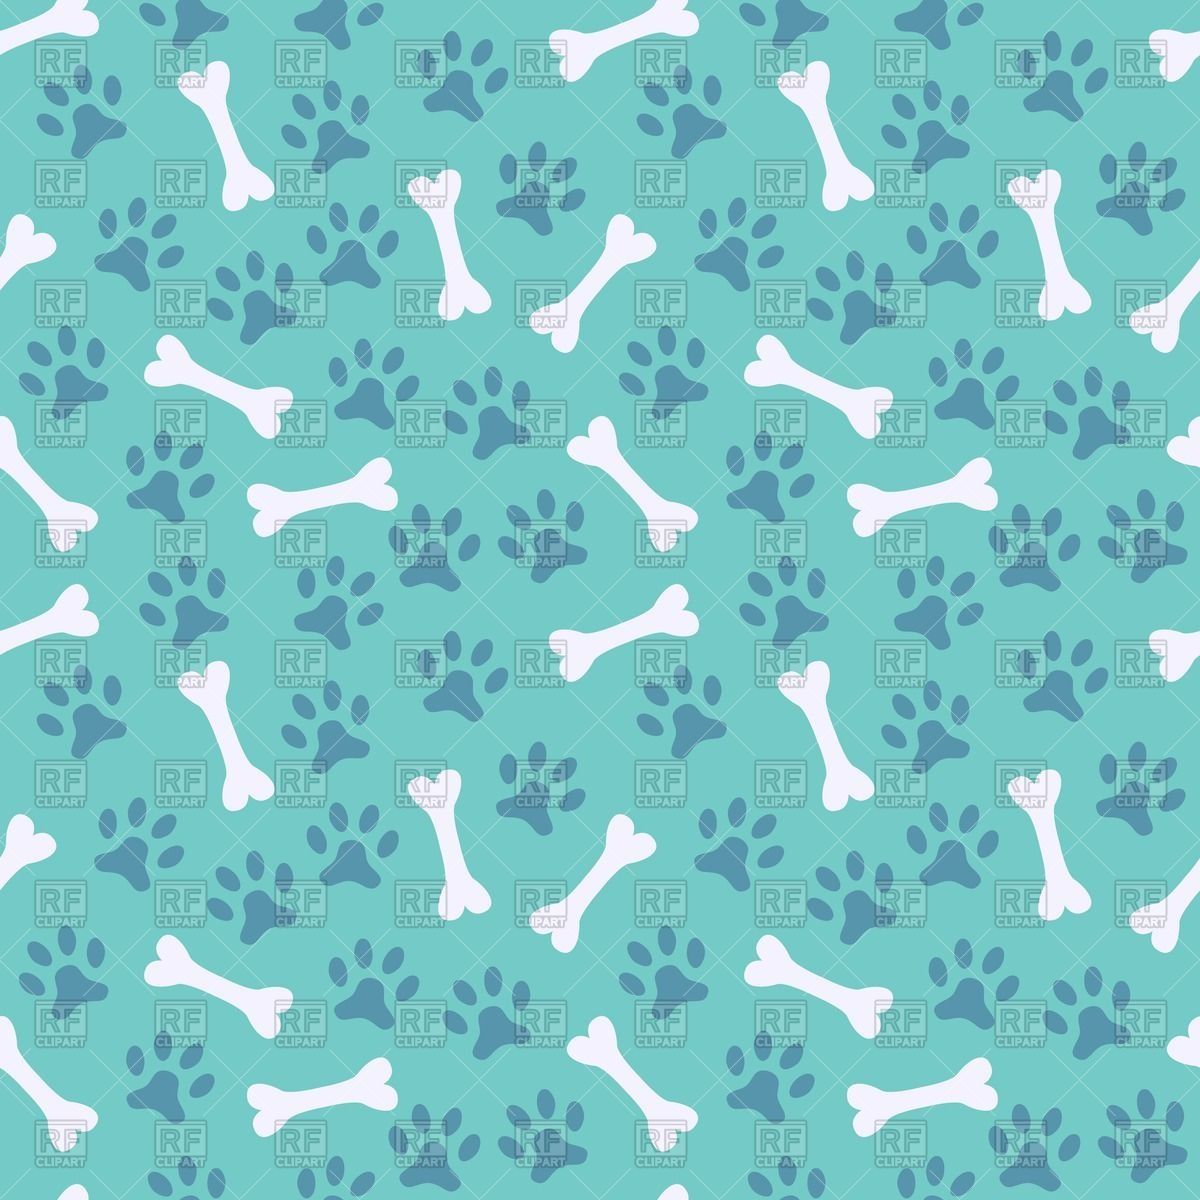 b22ae497b114 Royalty Free Vector image of Blue seamless pattern with dog's paw print and  bone #40430